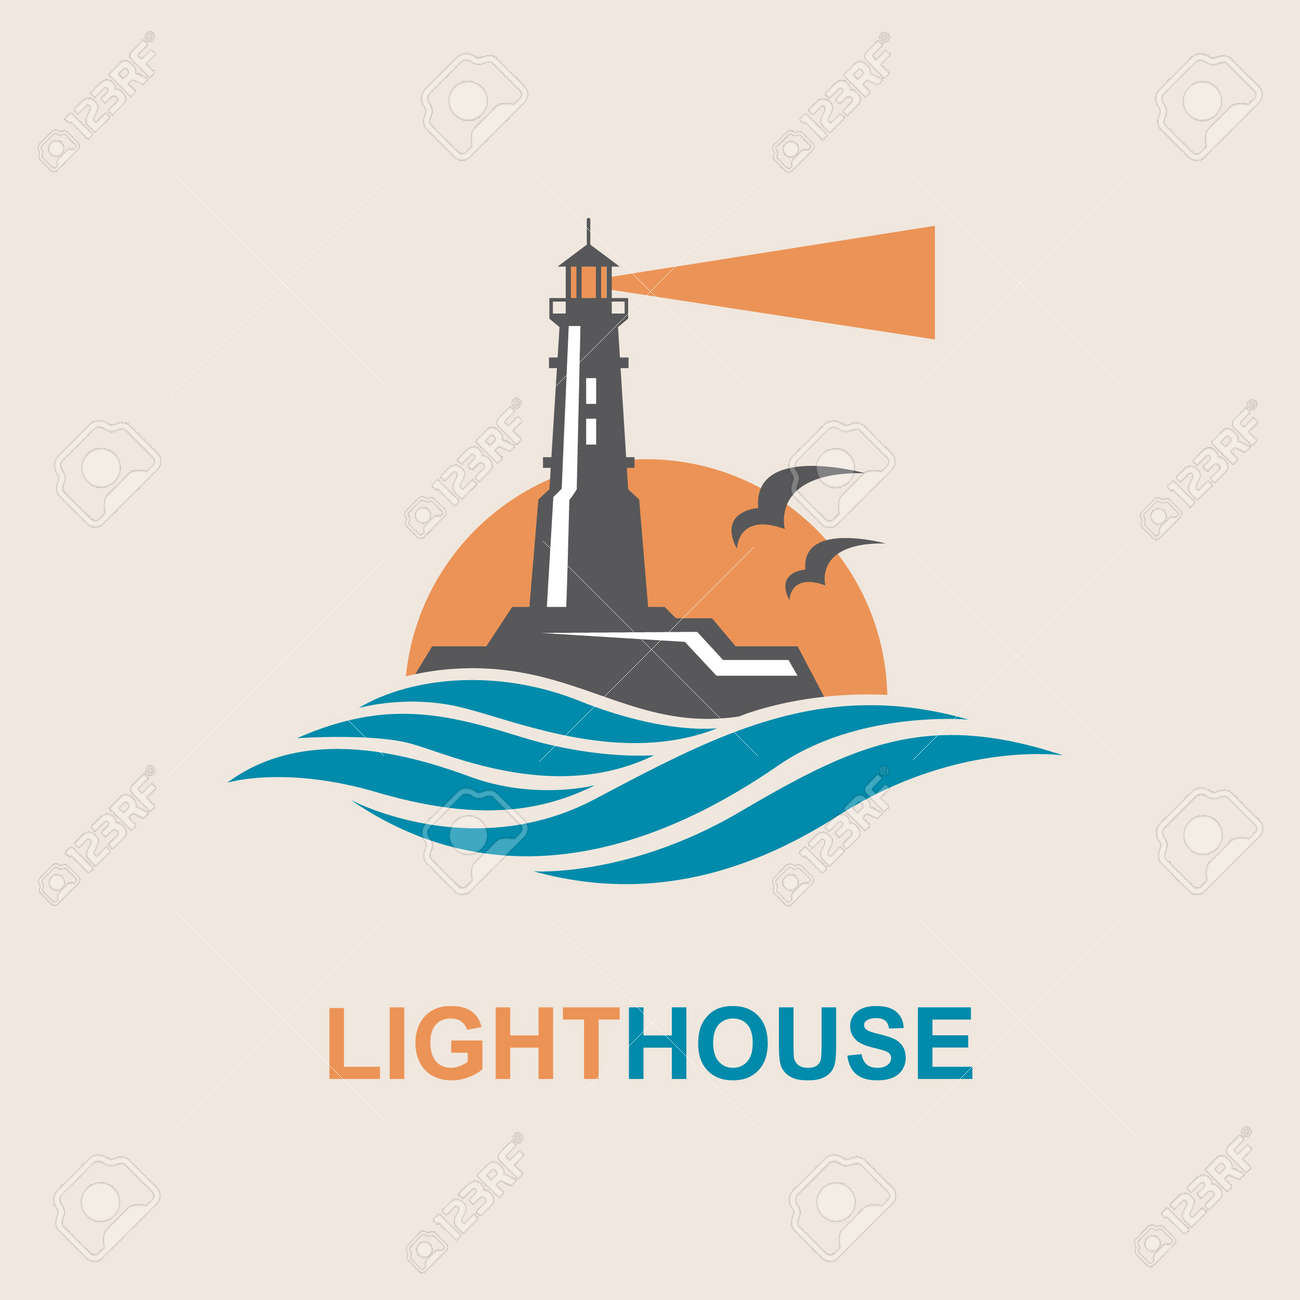 lighthouse icon design with ocean waves and seagulls - 70367749